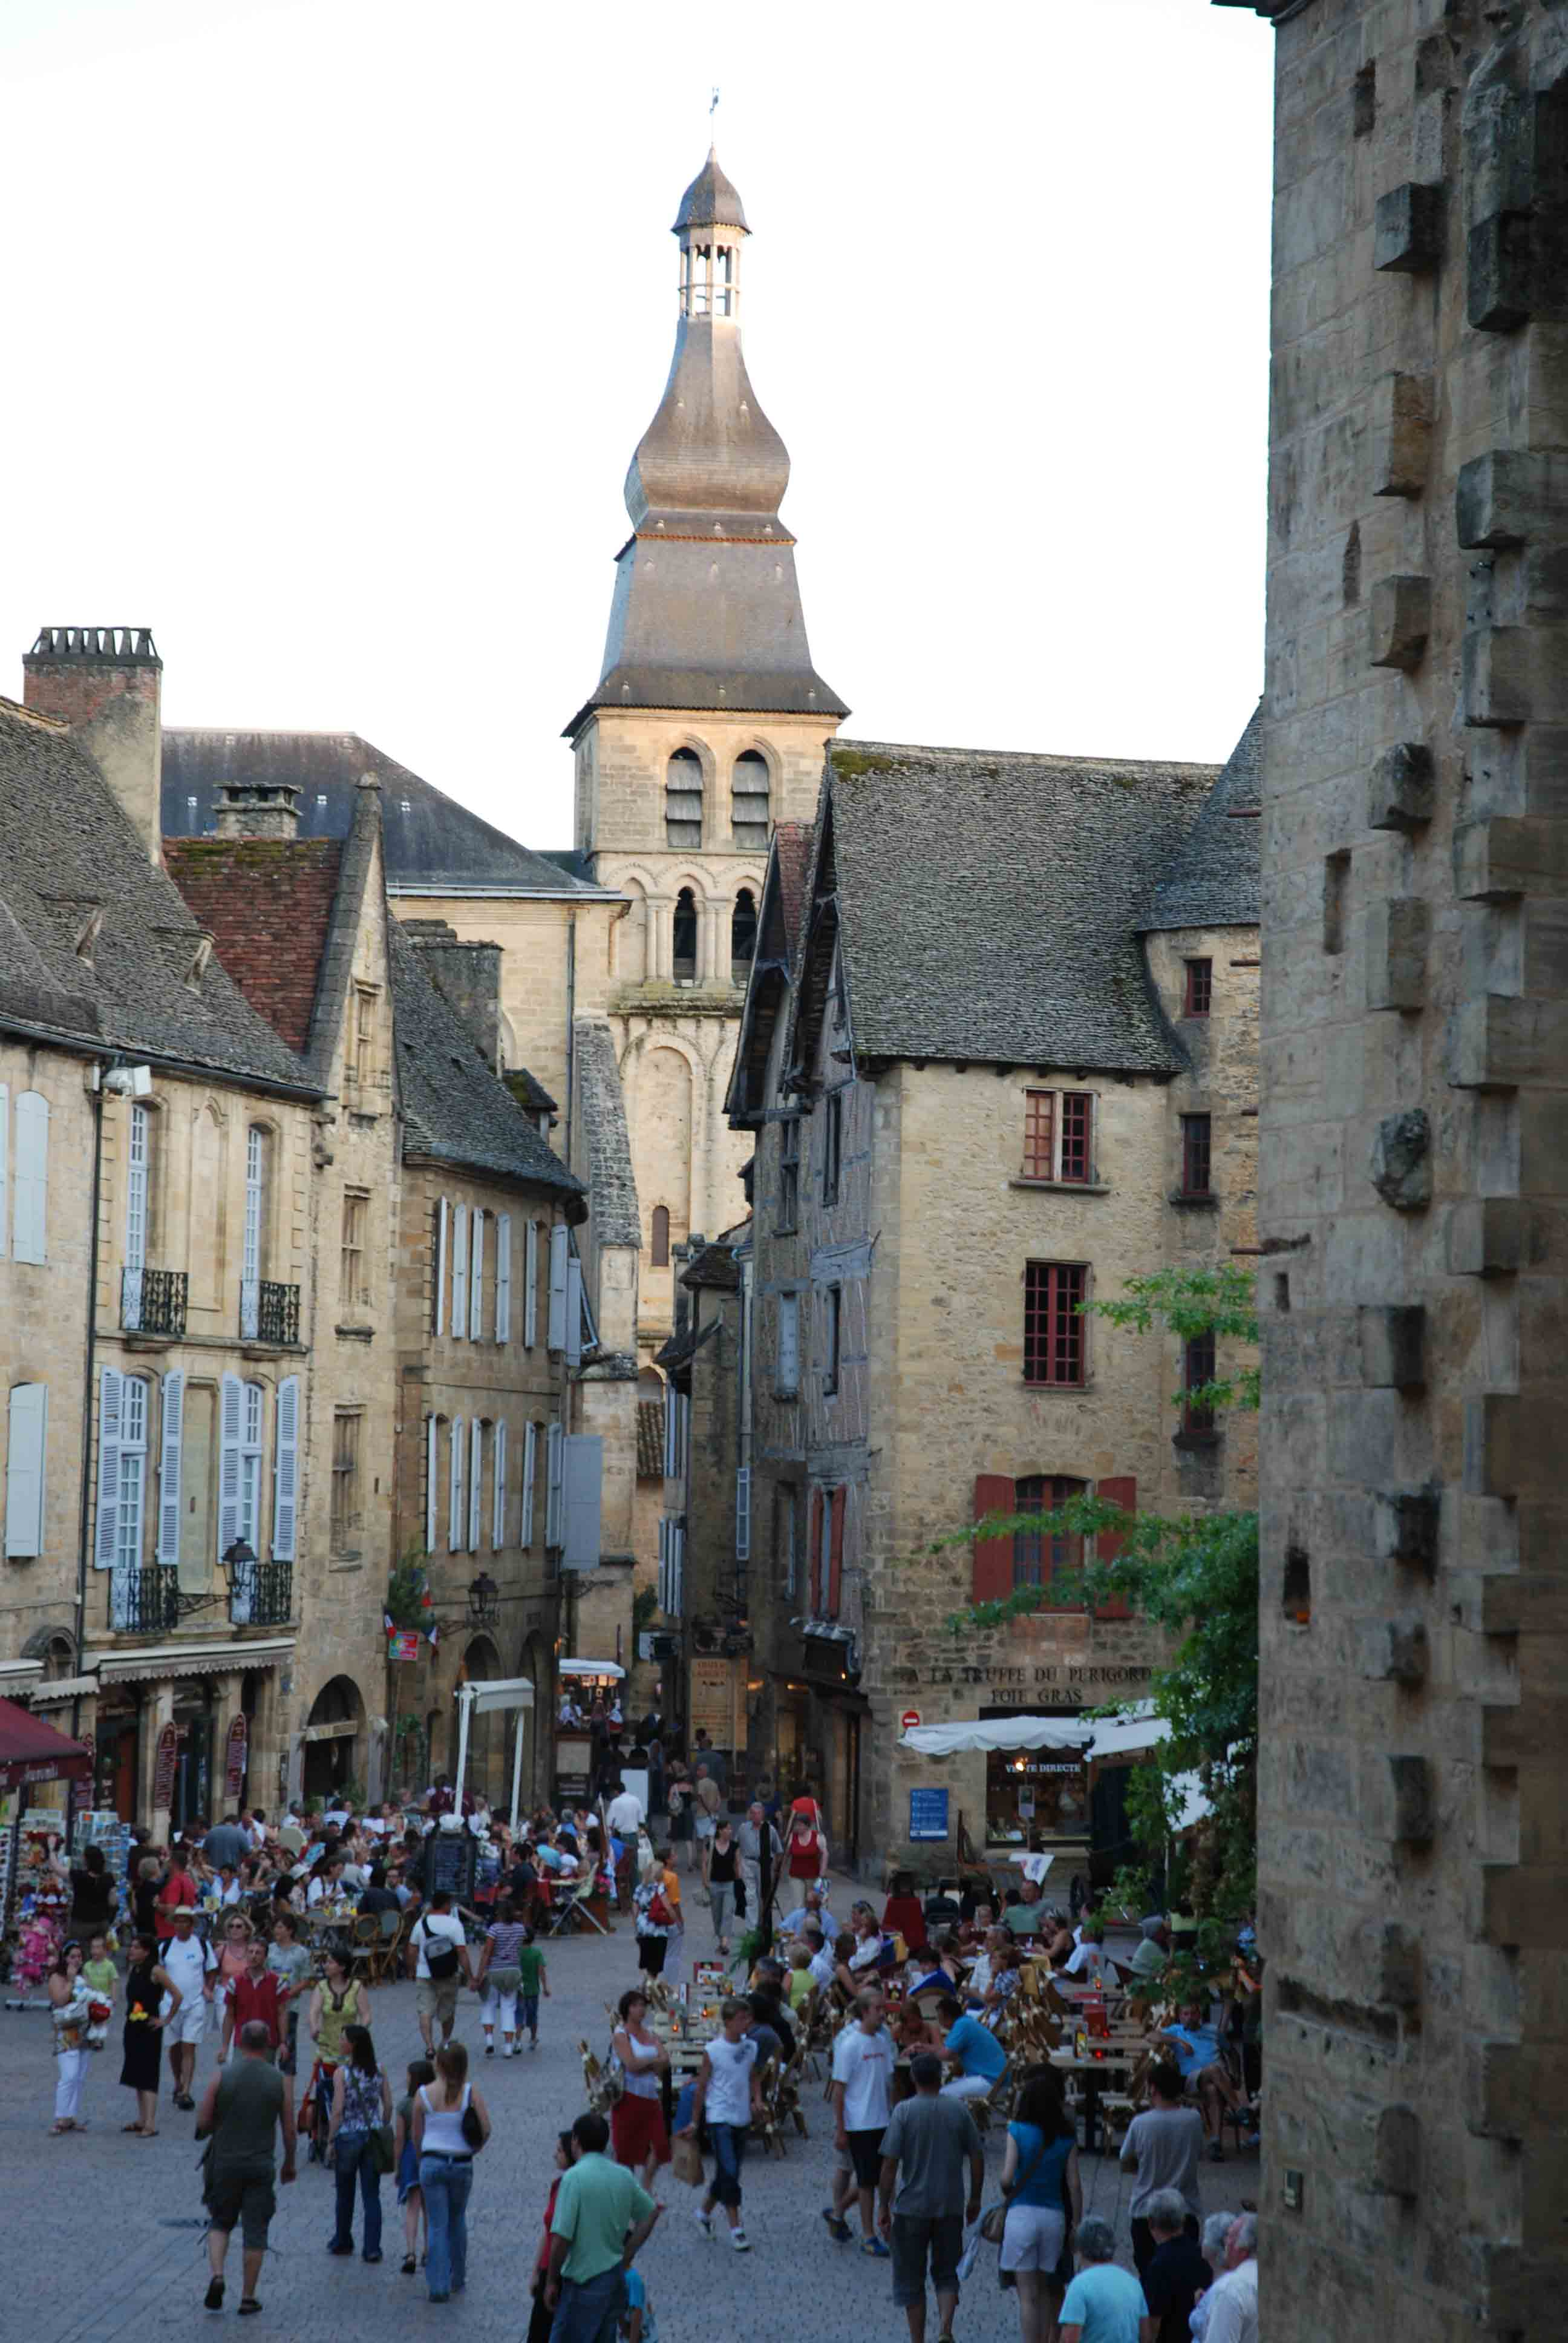 Musings On Turning 50 In Sarlat La Caneda France